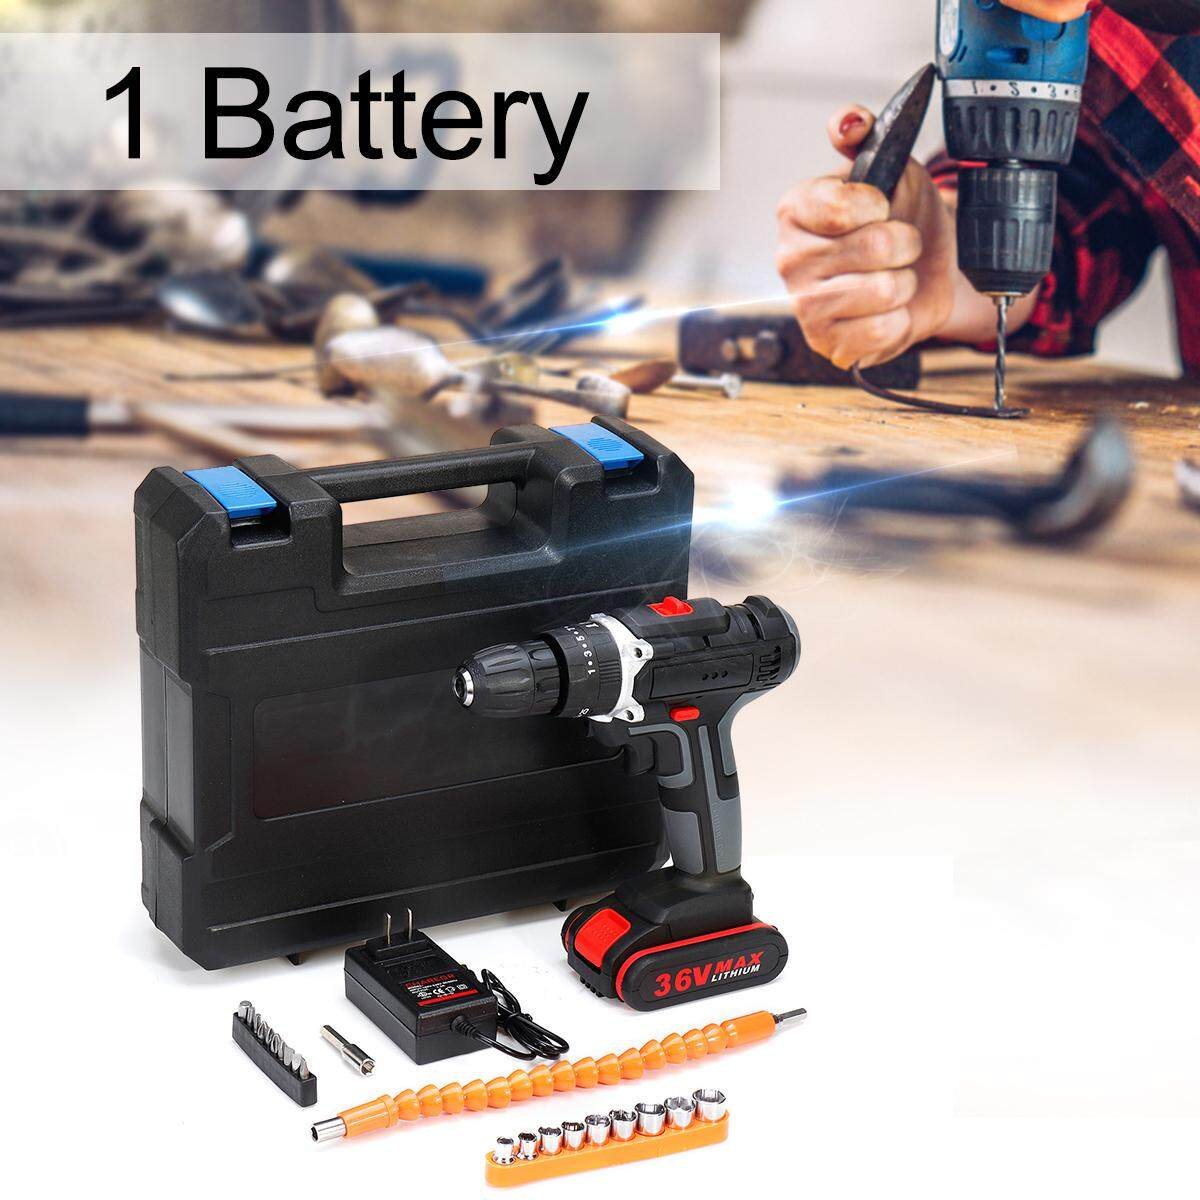 26/2728pcs Torque Double Speed Brushless Screwdriver Hammer 10mm Chuck Power Tools With LED Light(1/2/3Pcs Battery) Cordless Electric Drill 36V 6500mAh